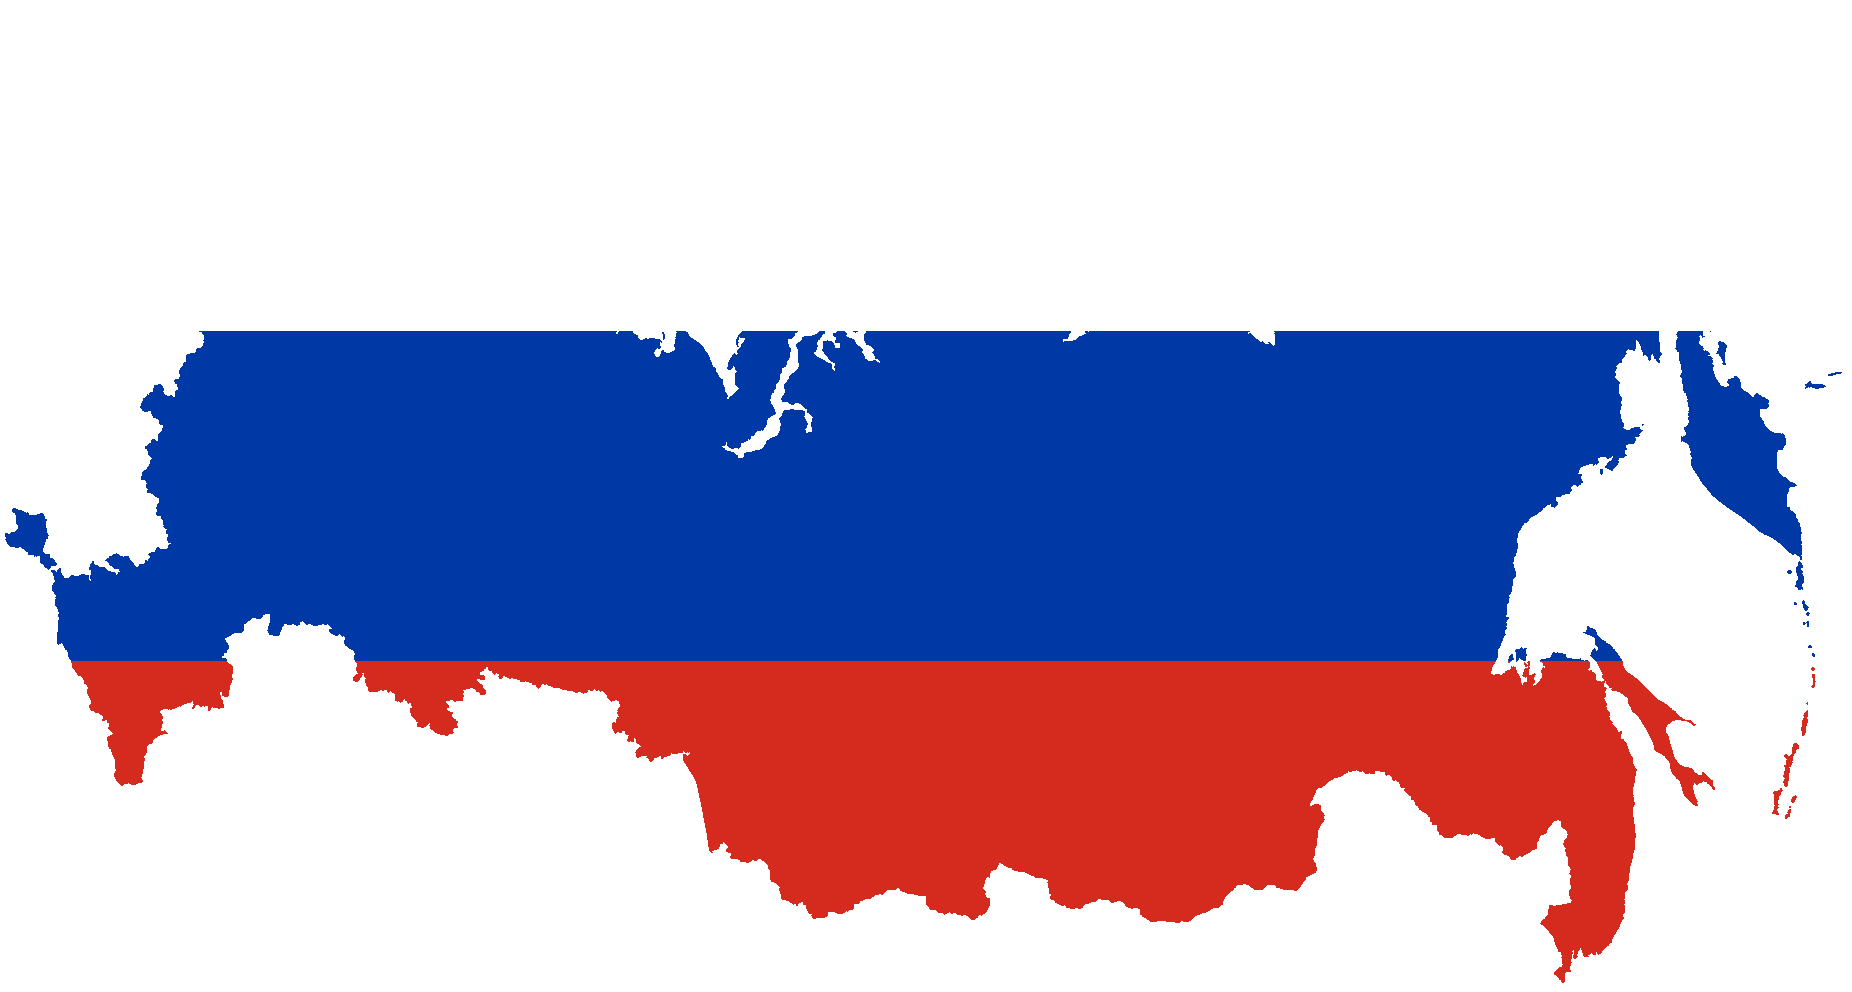 Flag of Russia Map.